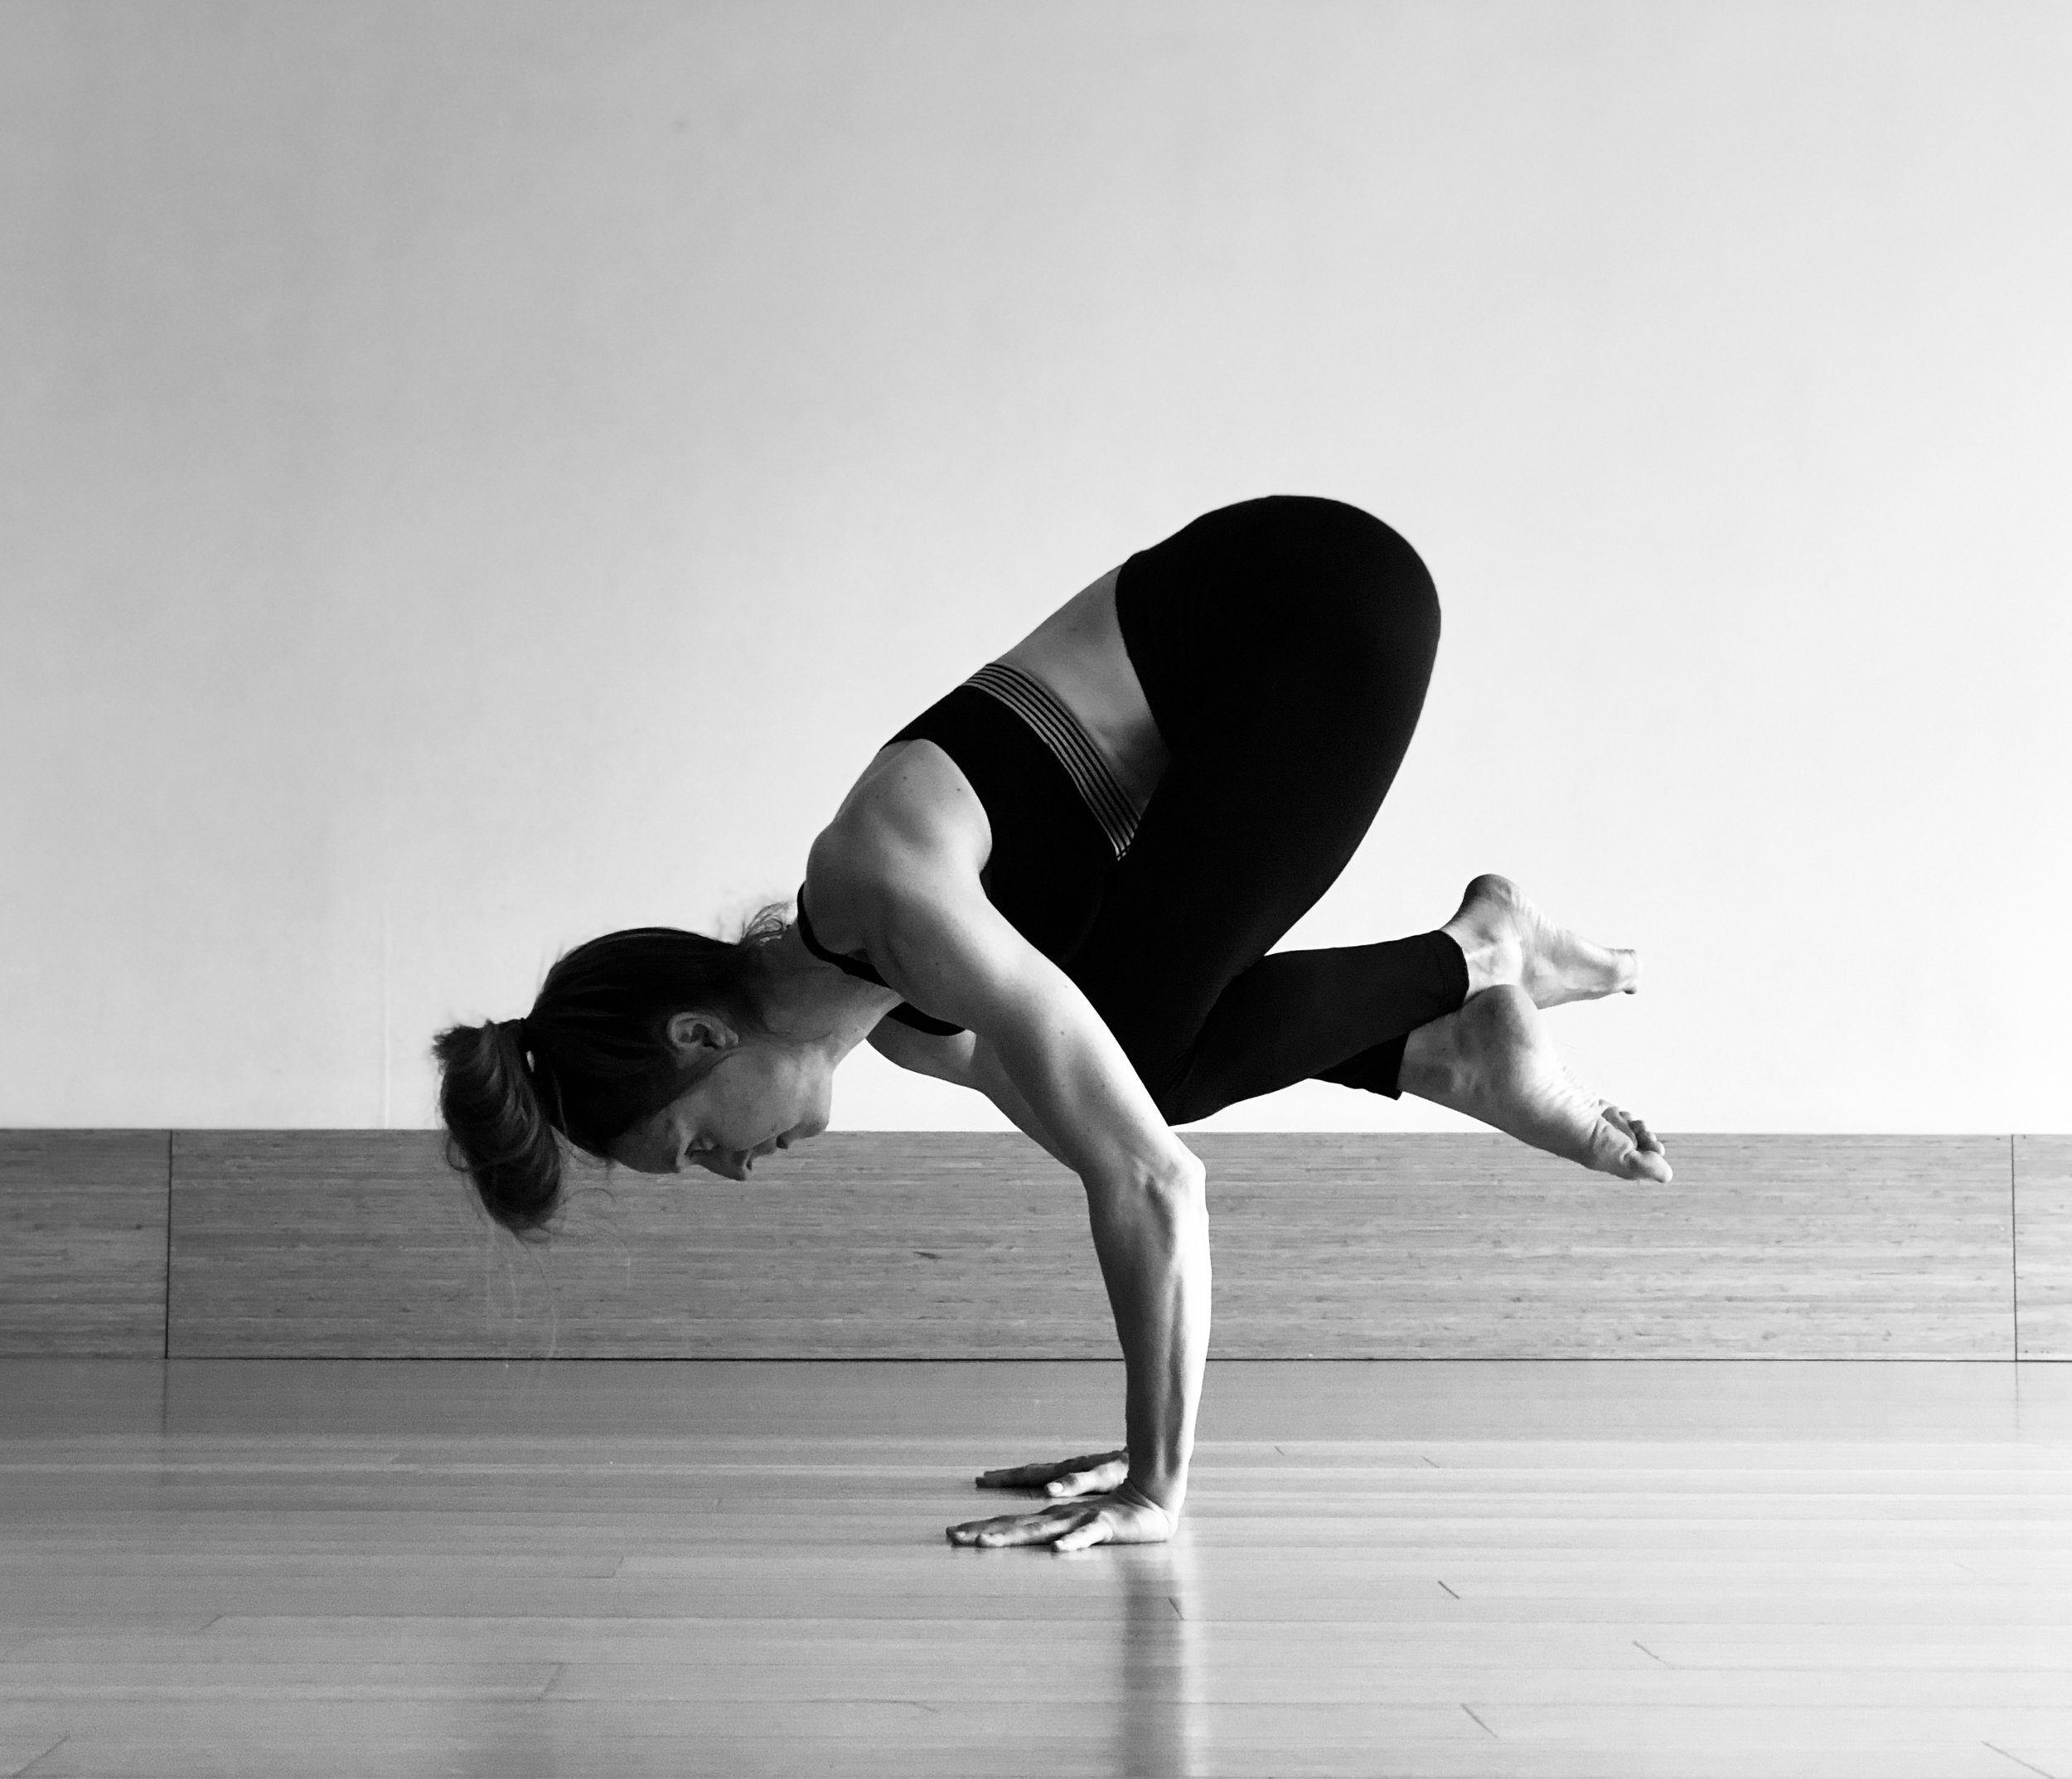 Downward Dog - 735 Queen St W 2nd Floor(416) 703-8805